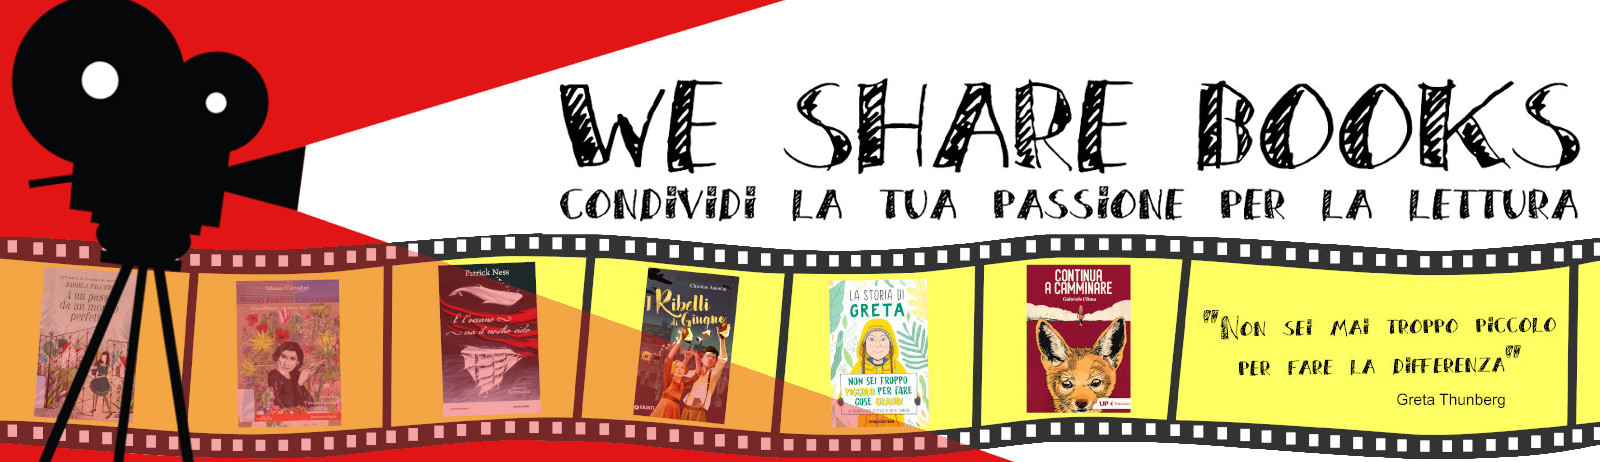 Concorso We Share Books